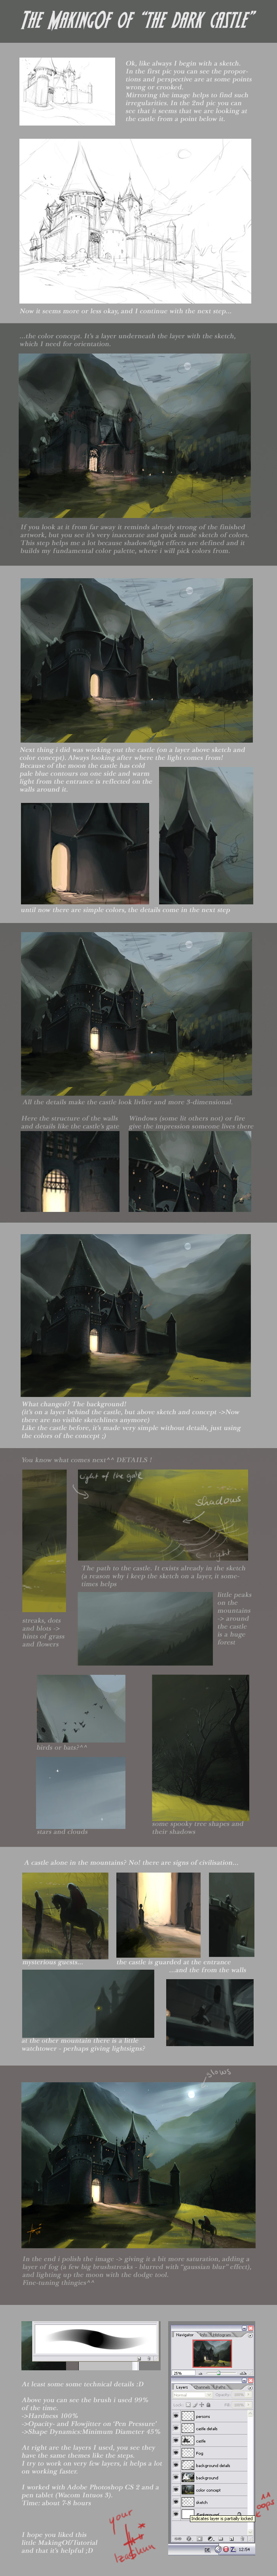 MakingOf - the dark castle by Izaskun